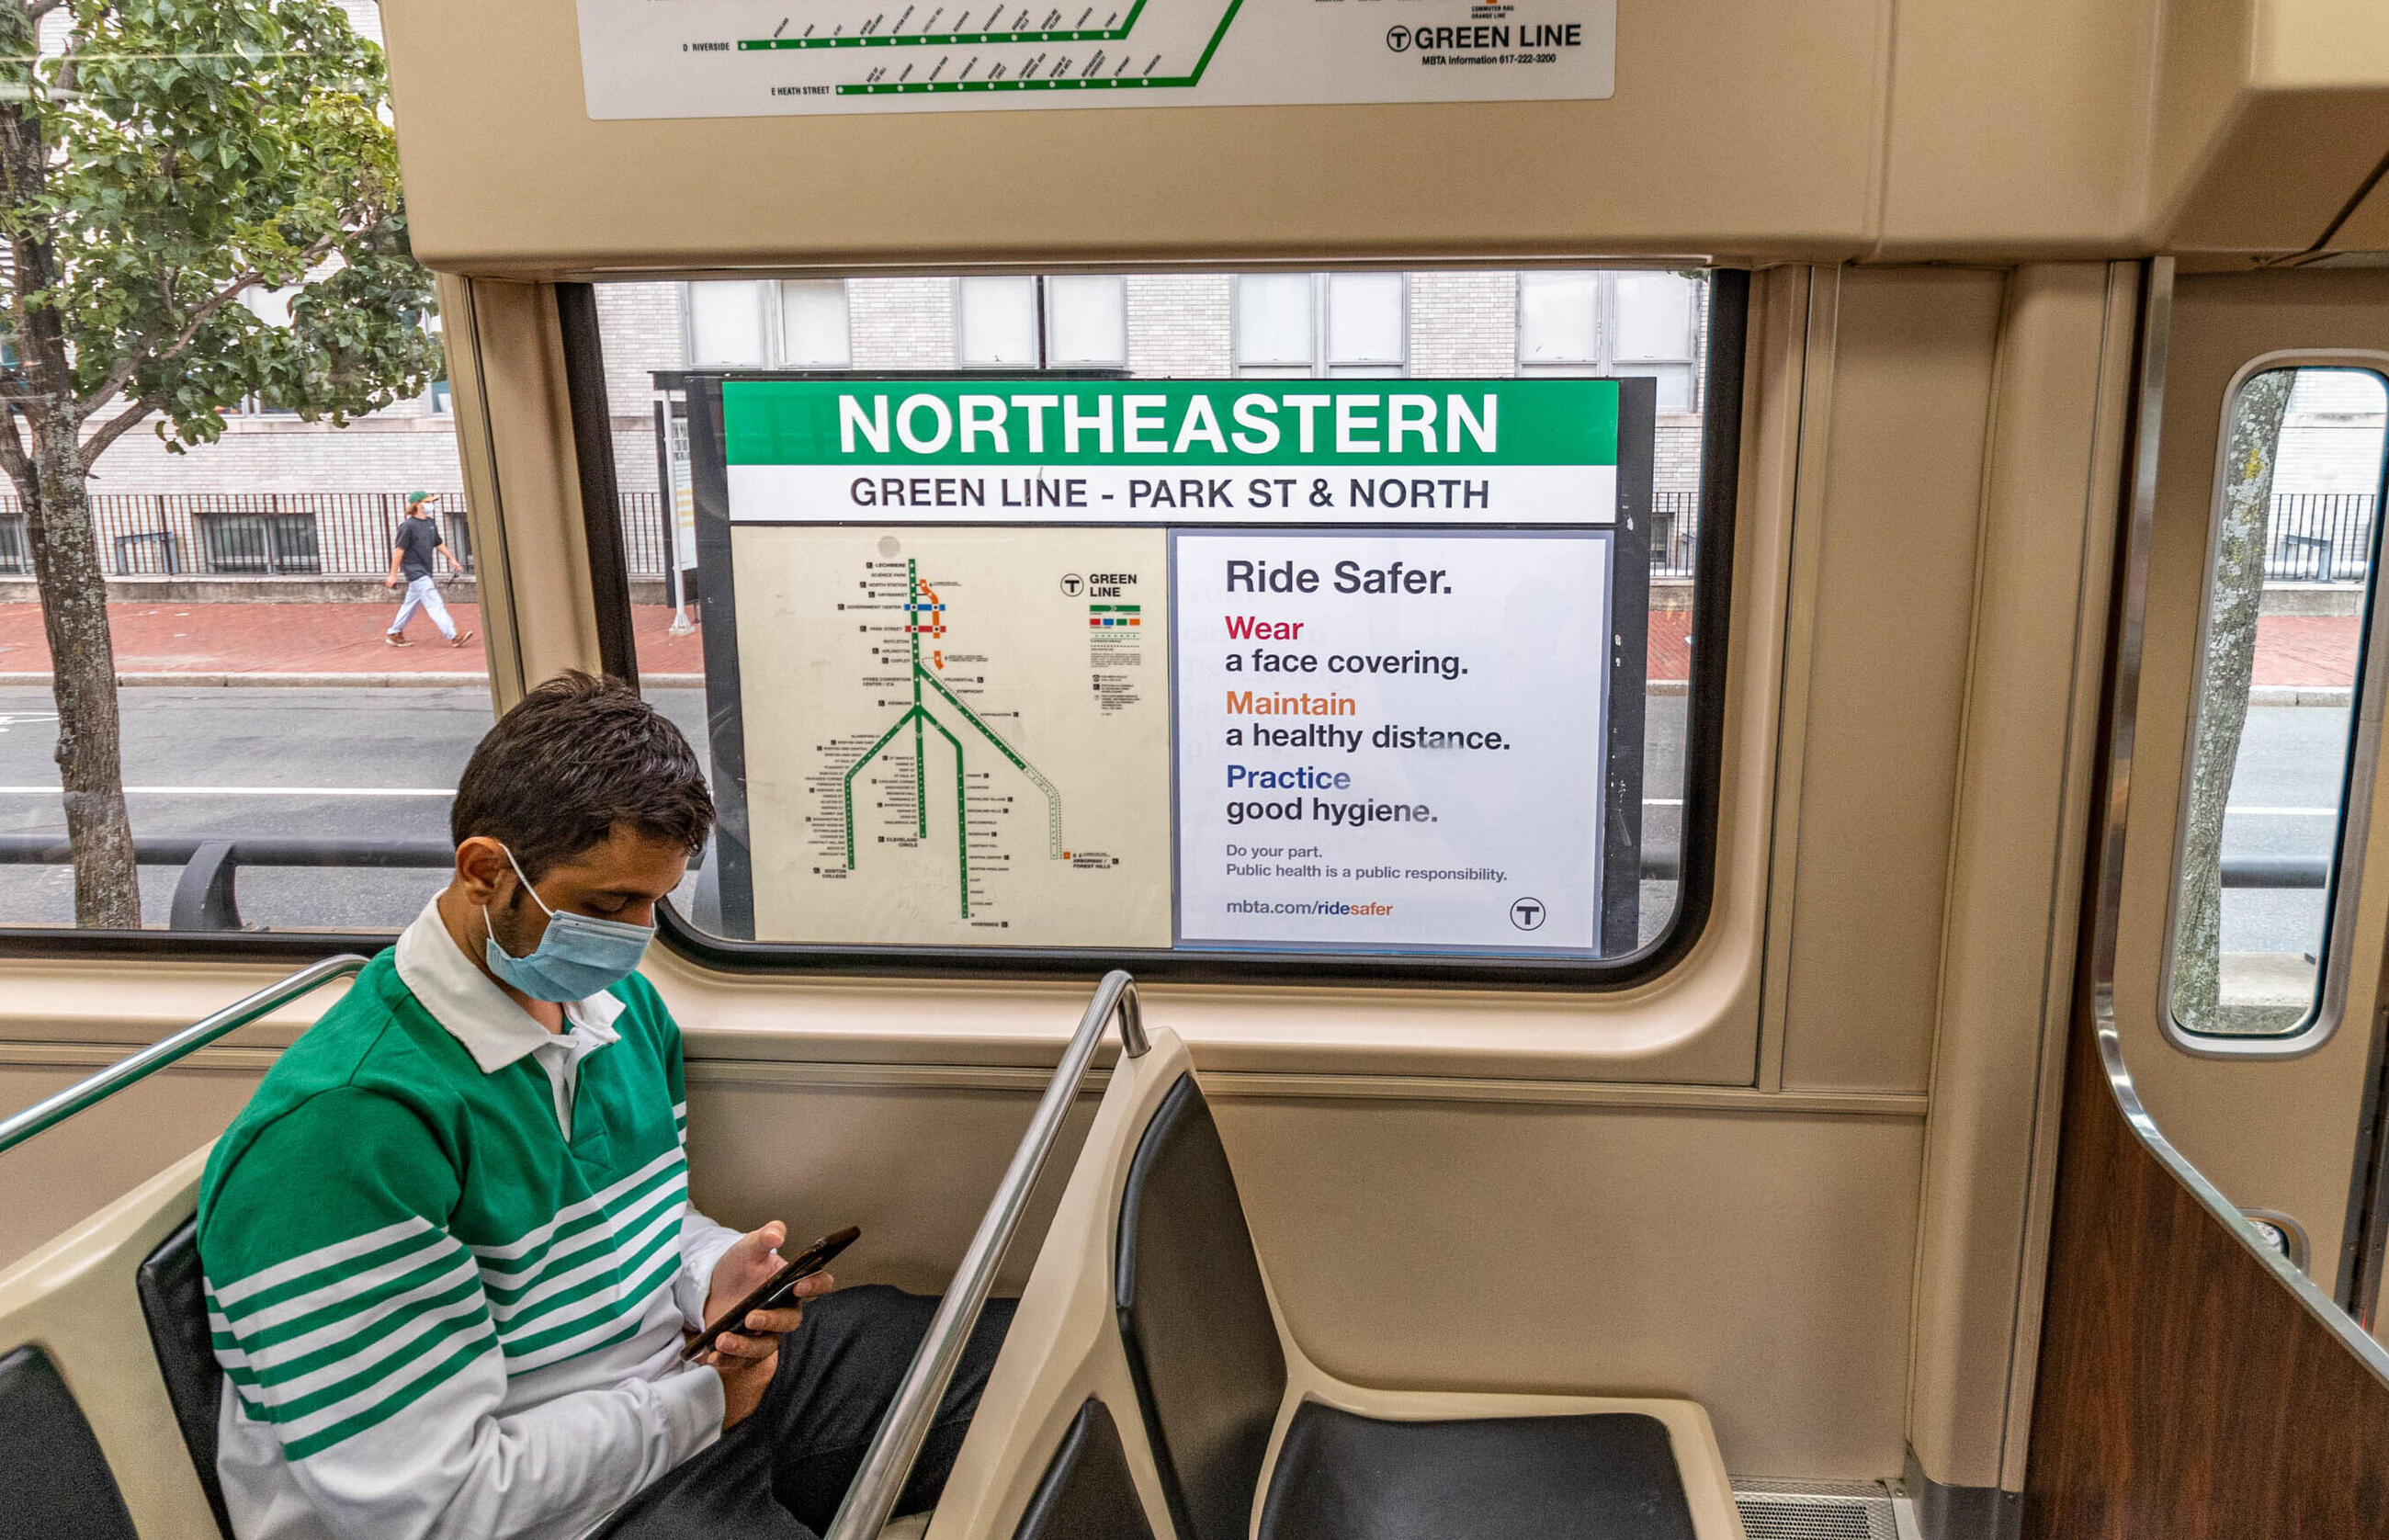 Person on the green line, with a Ride Safer sign in the background